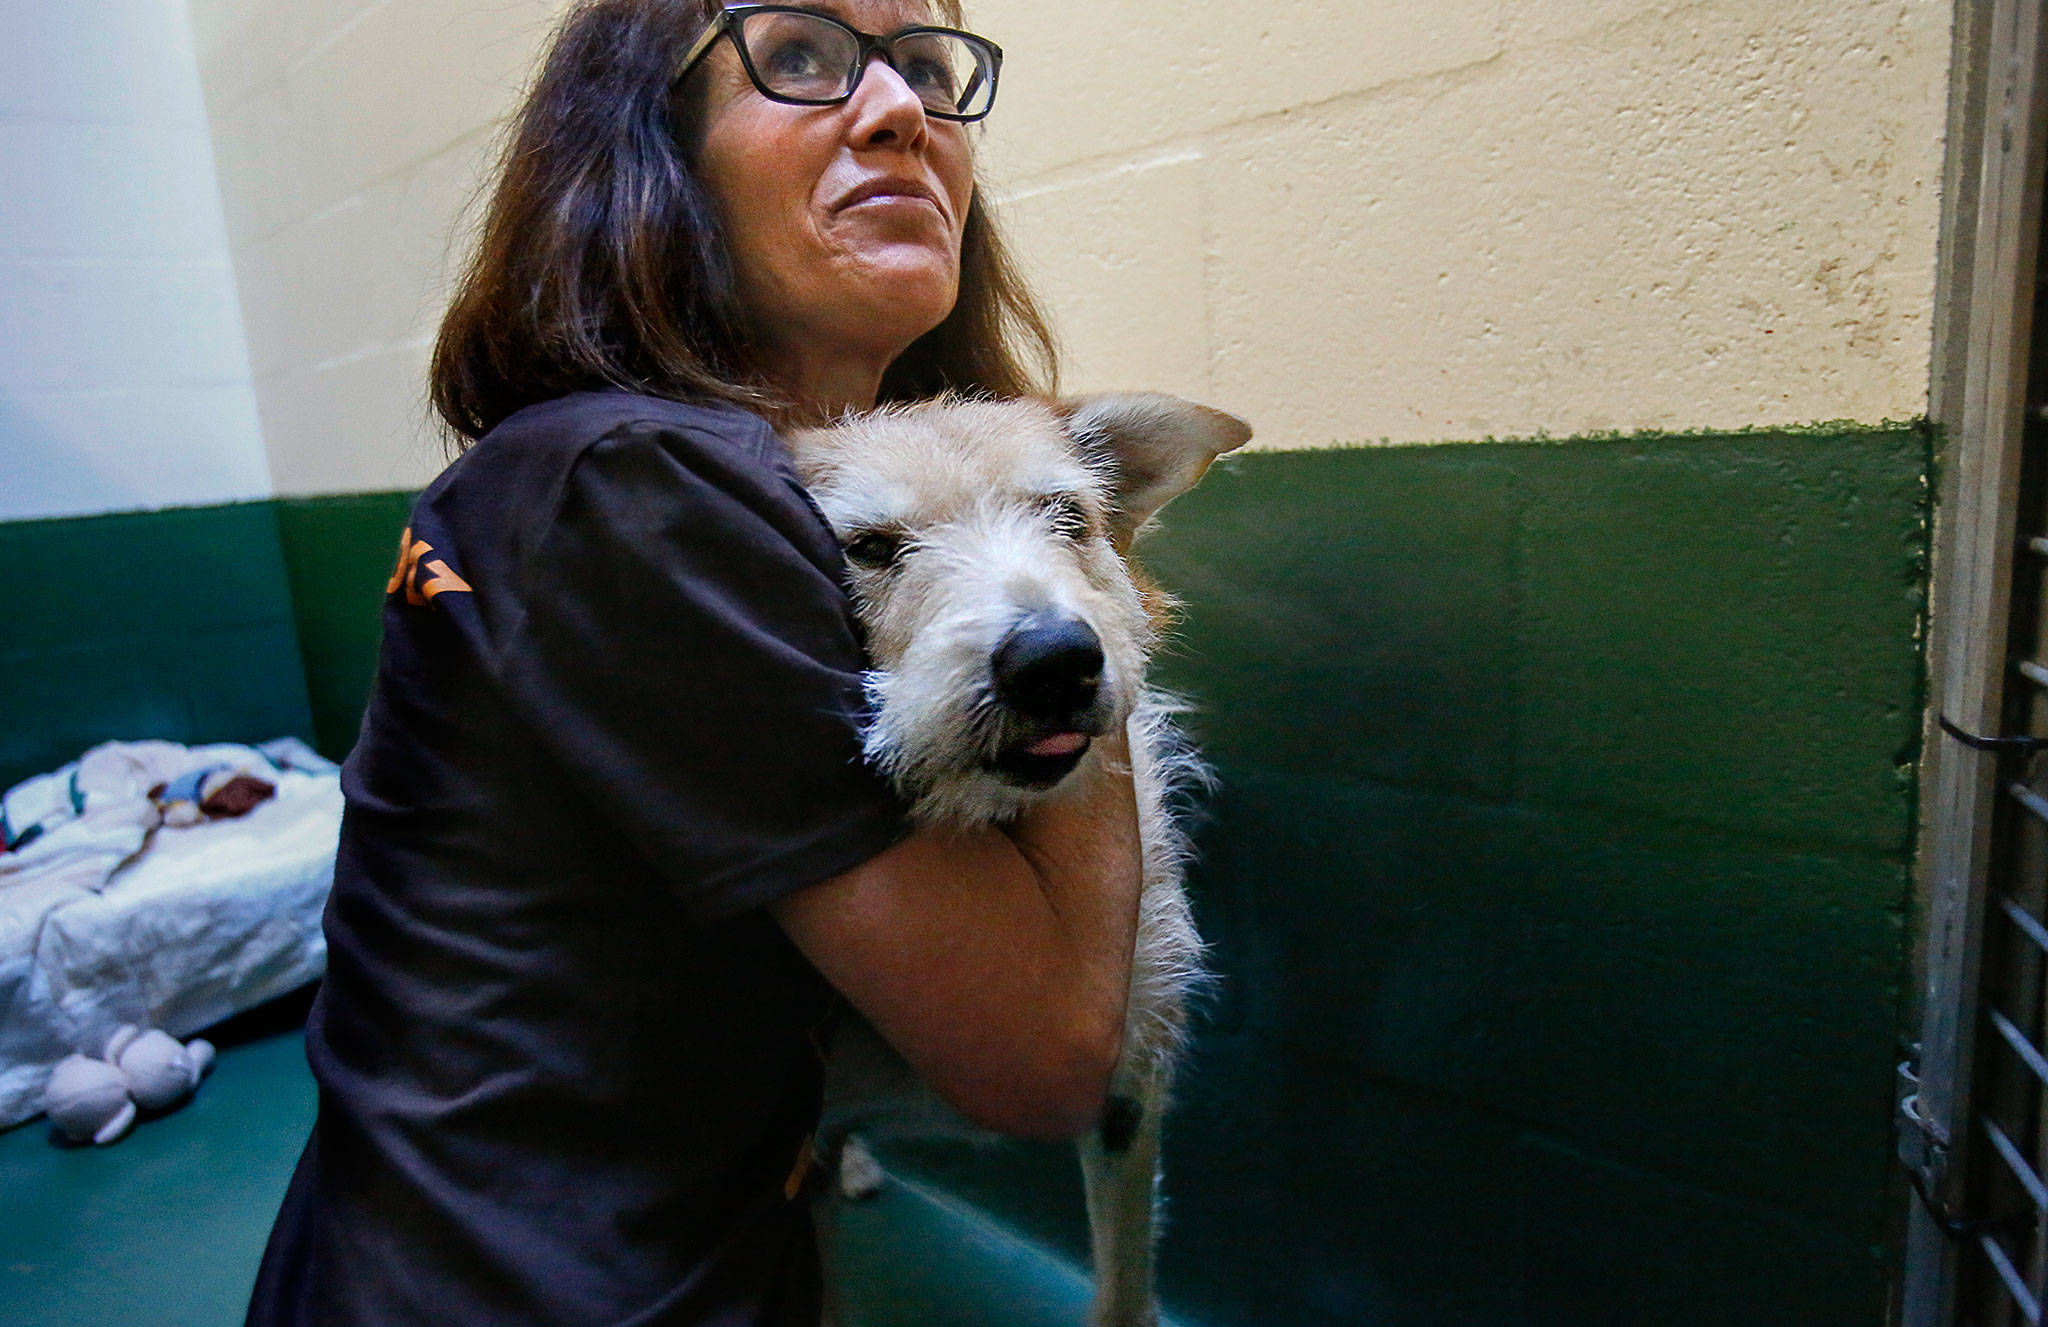 PAWS' Laura Follis embraces Sandy, a terrier mix that suffers from hair loss and other disorders. The nonprofit is the recipient of a gift of at least $500,000 from the estate of an Edmonds woman. (Dan Bates / Herald file)